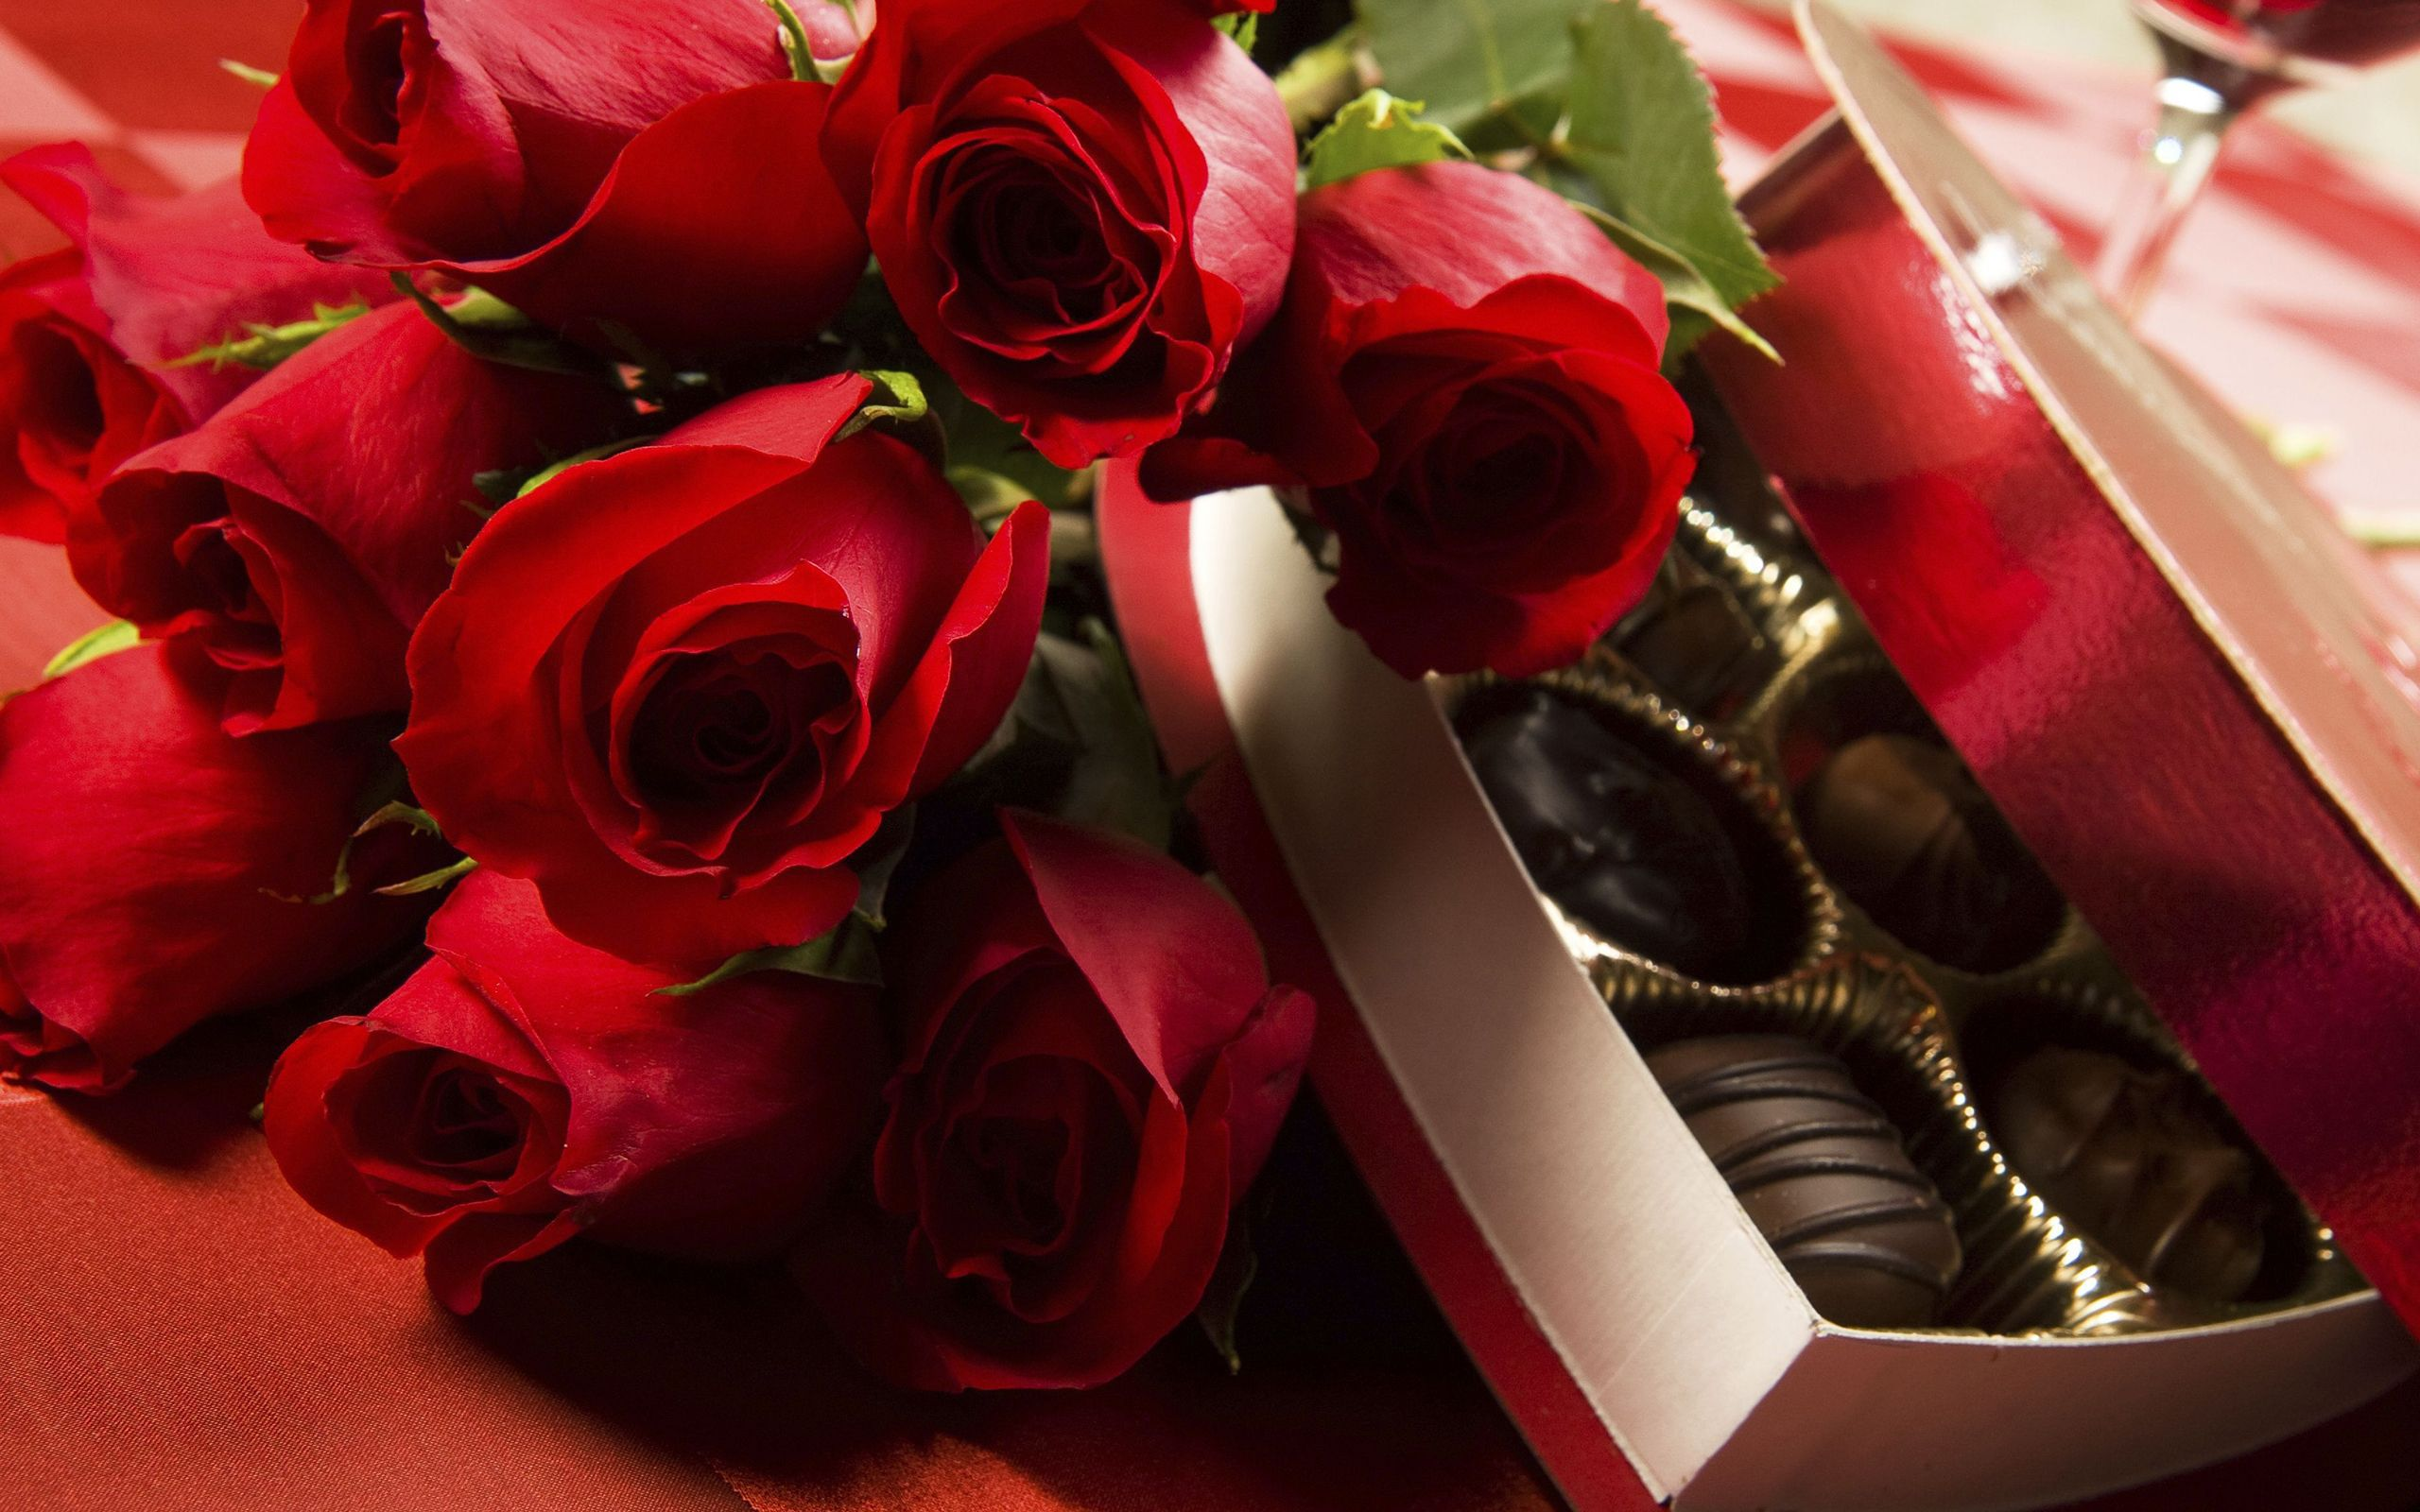 Beautiful Romantic Wallpaper With Roses And Chocolates Valentines Roses Beautiful Valentine Valentines